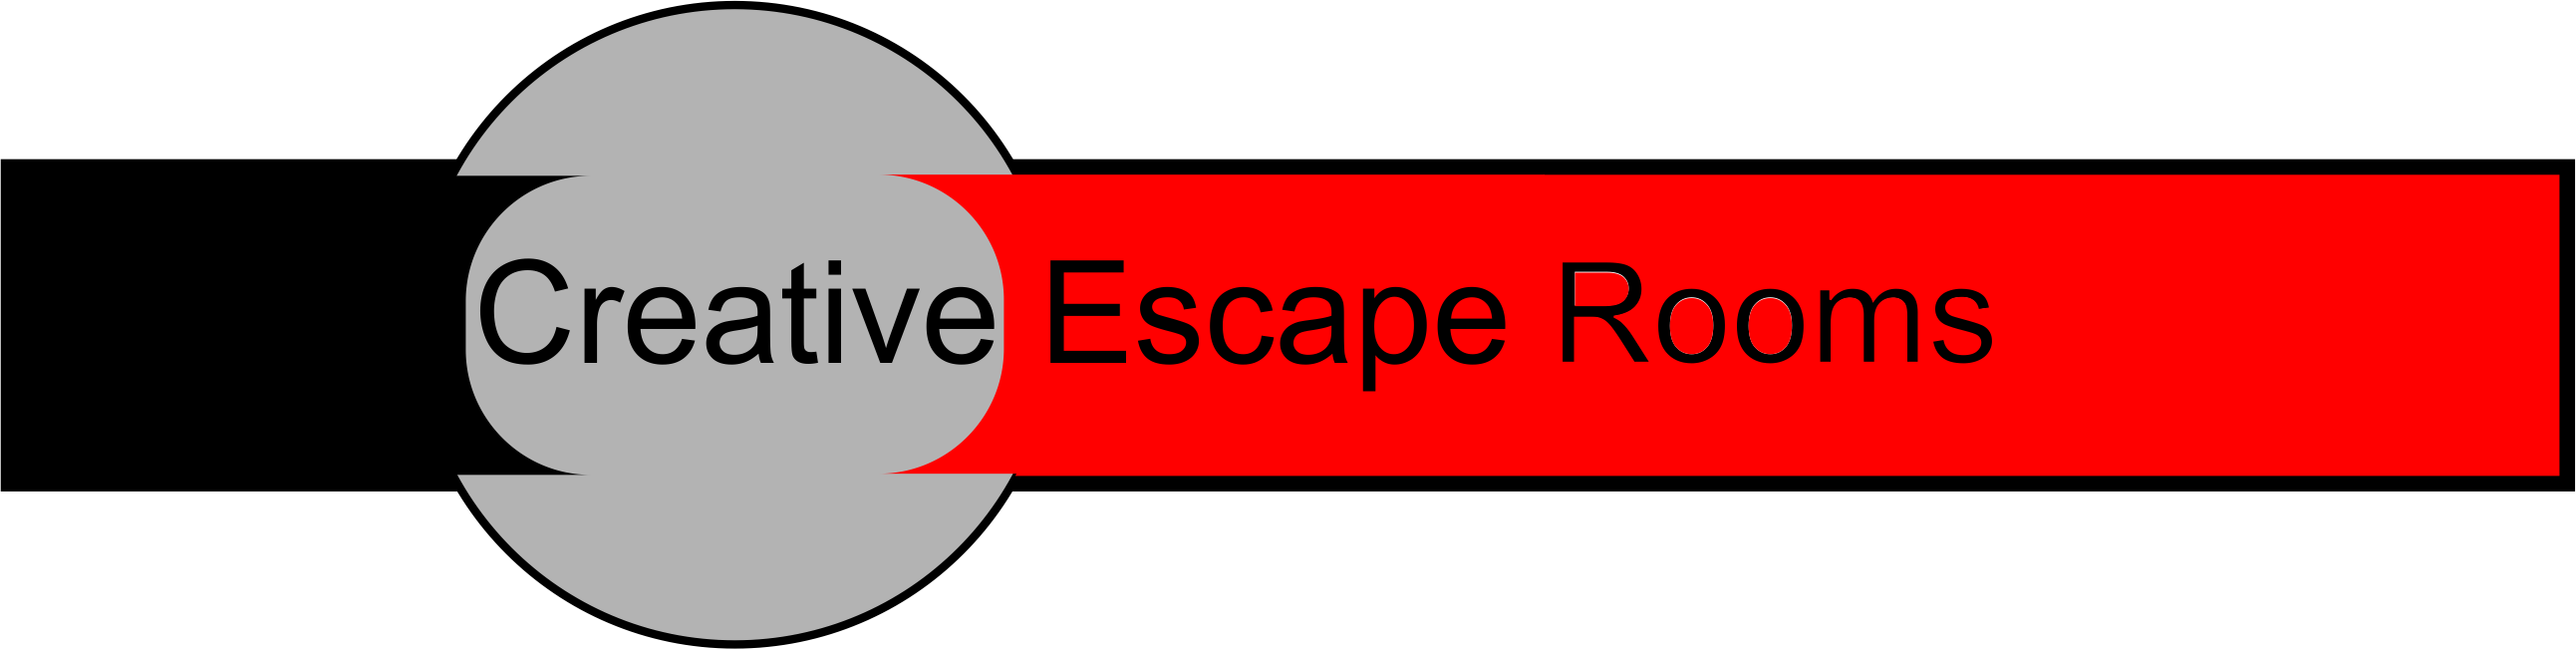 Creative Escape Rooms